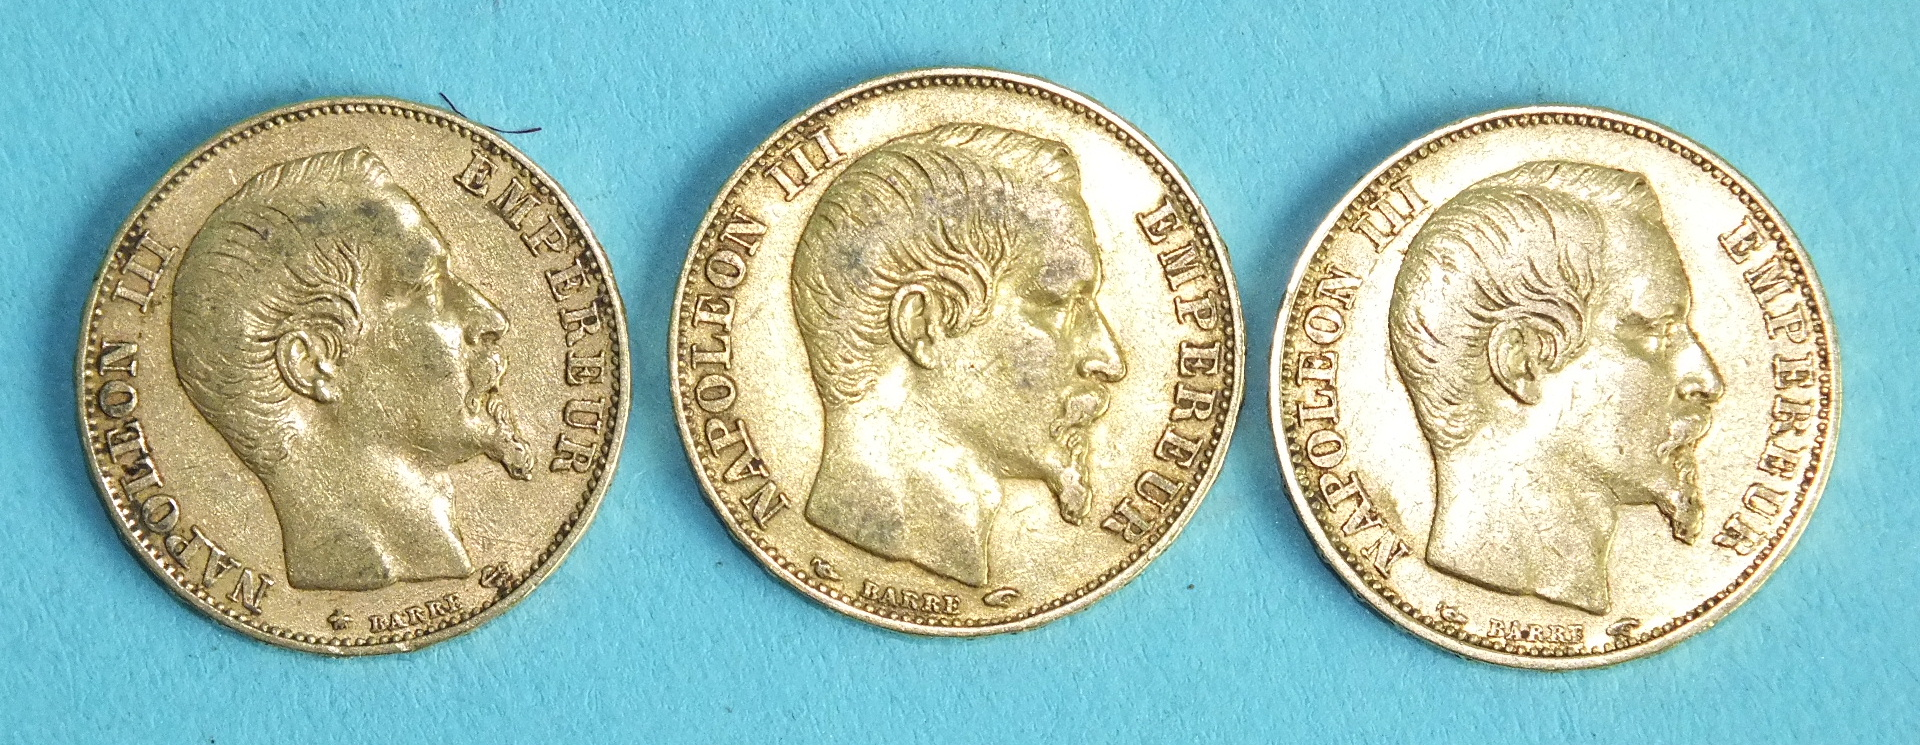 Lot 386 - Three French Napoleon III 20-Francs coins, 1853, 1855 (x2), (3).